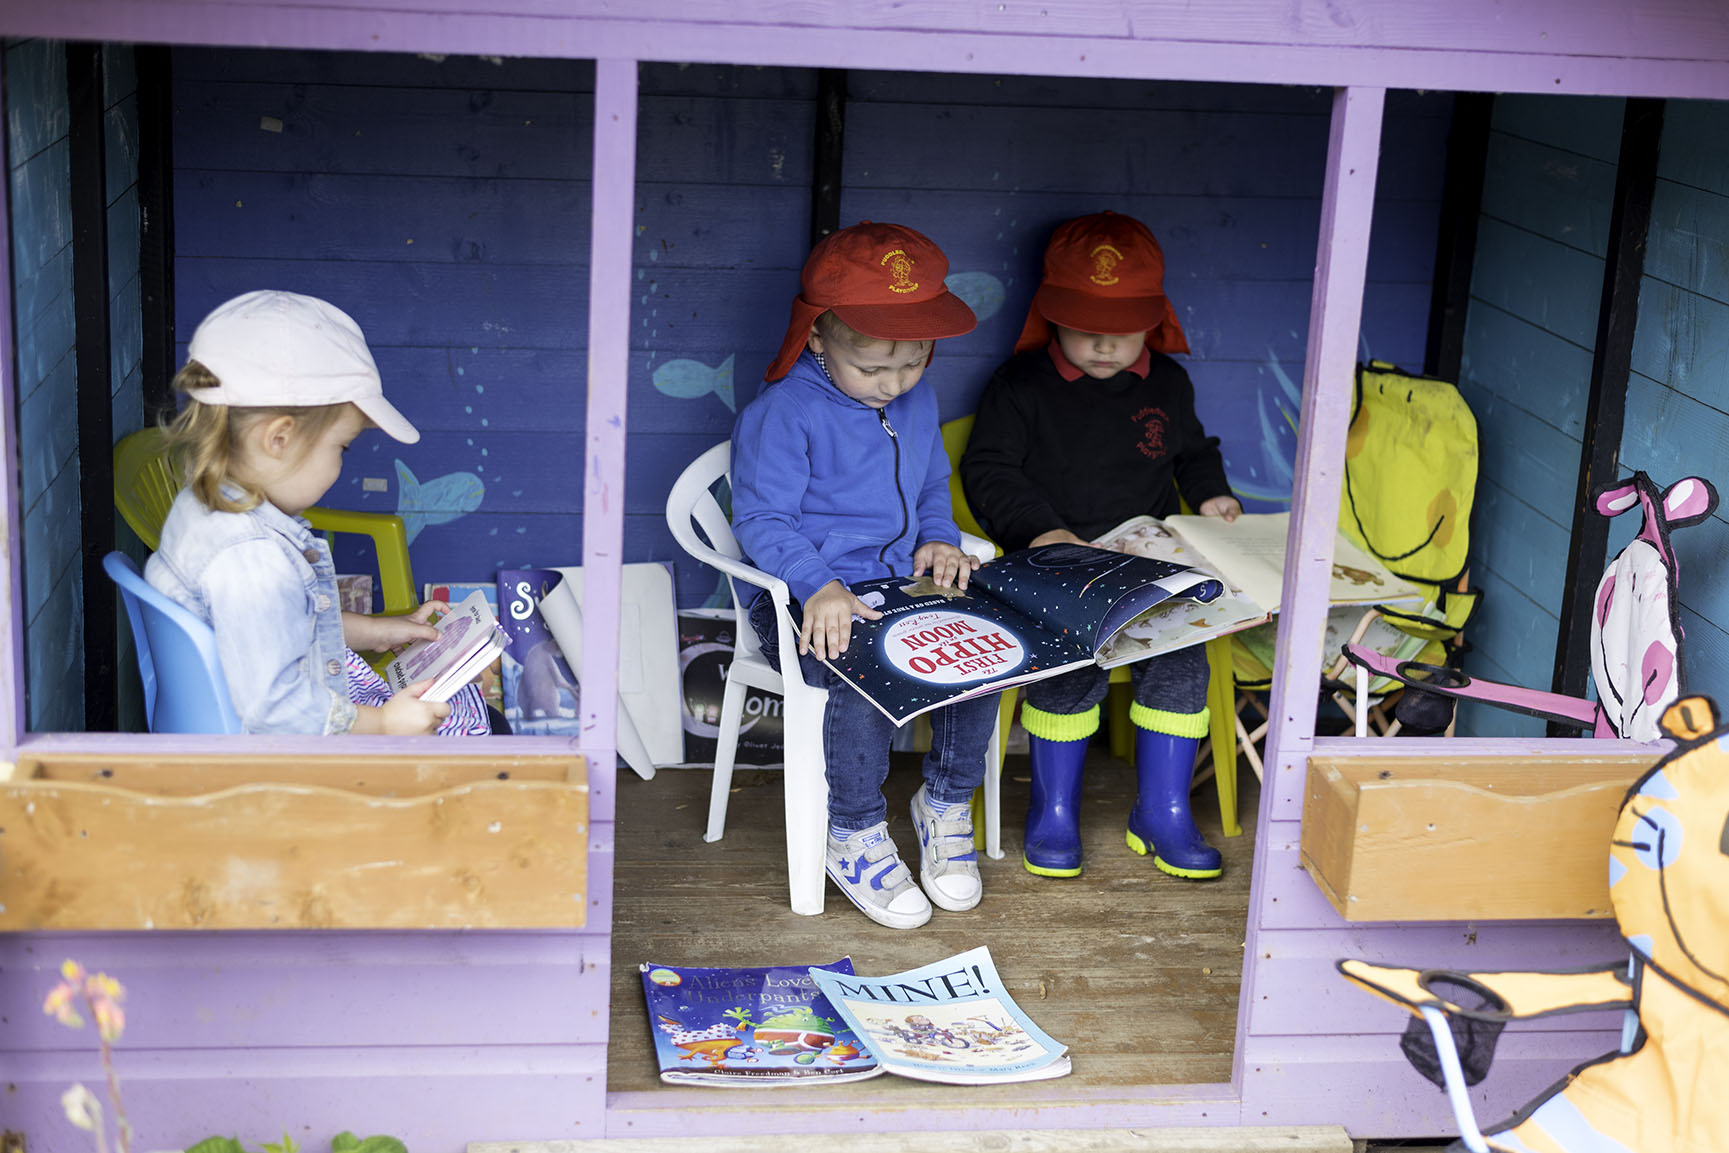 Reading in the playhouse